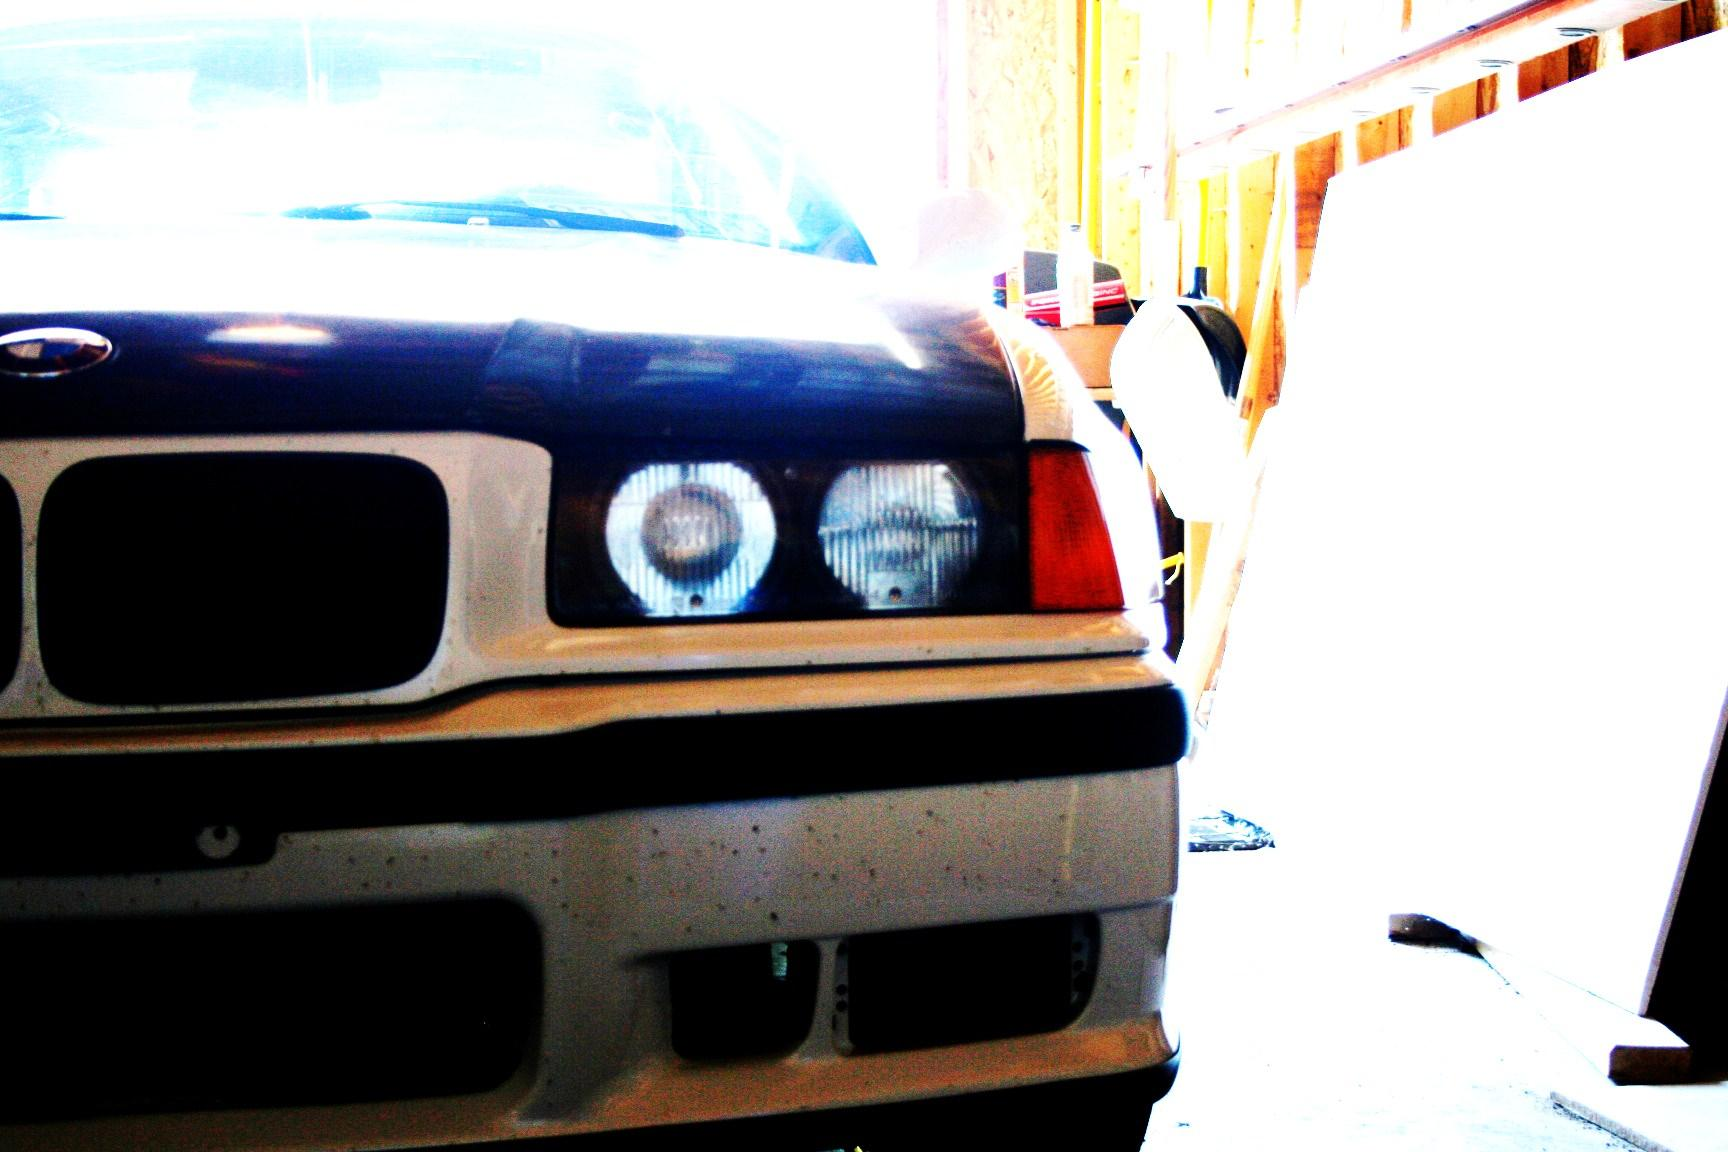 M-Power96's 1996 BMW M3